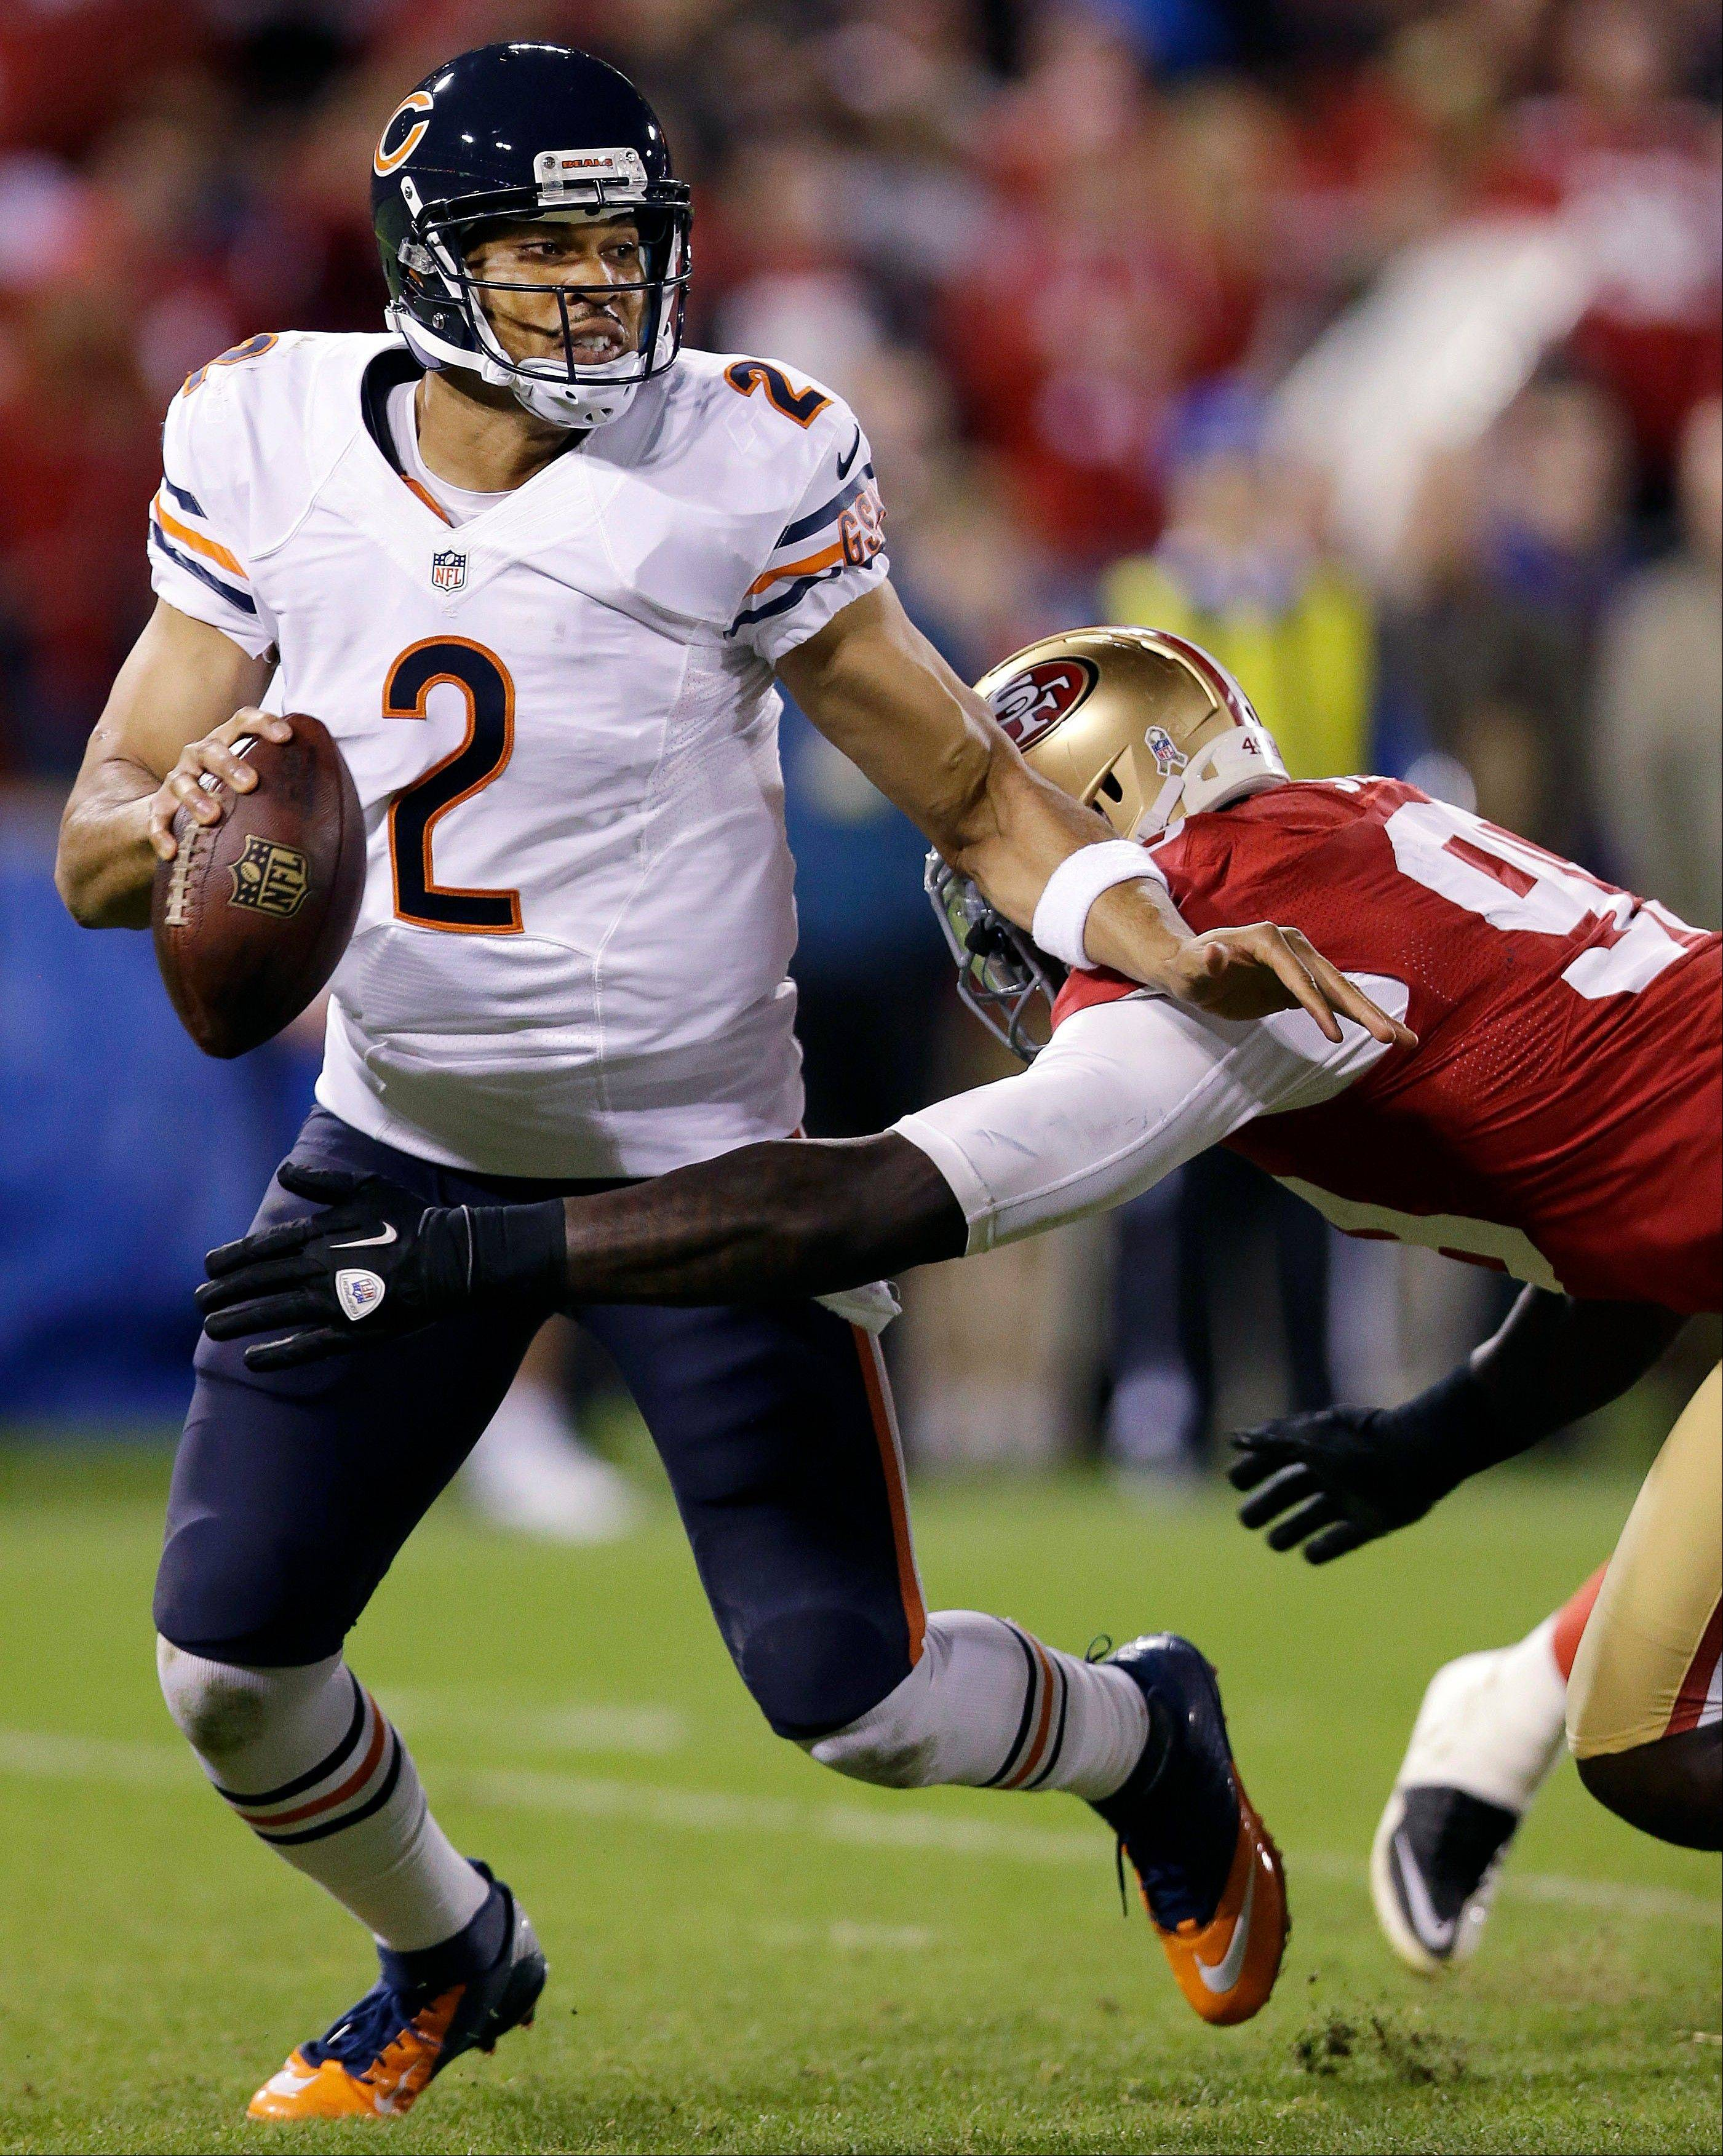 Chicago Bears quarterback Jason Campbell is sacked by San Francisco 49ers linebacker Aldon Smith during the third quarter.